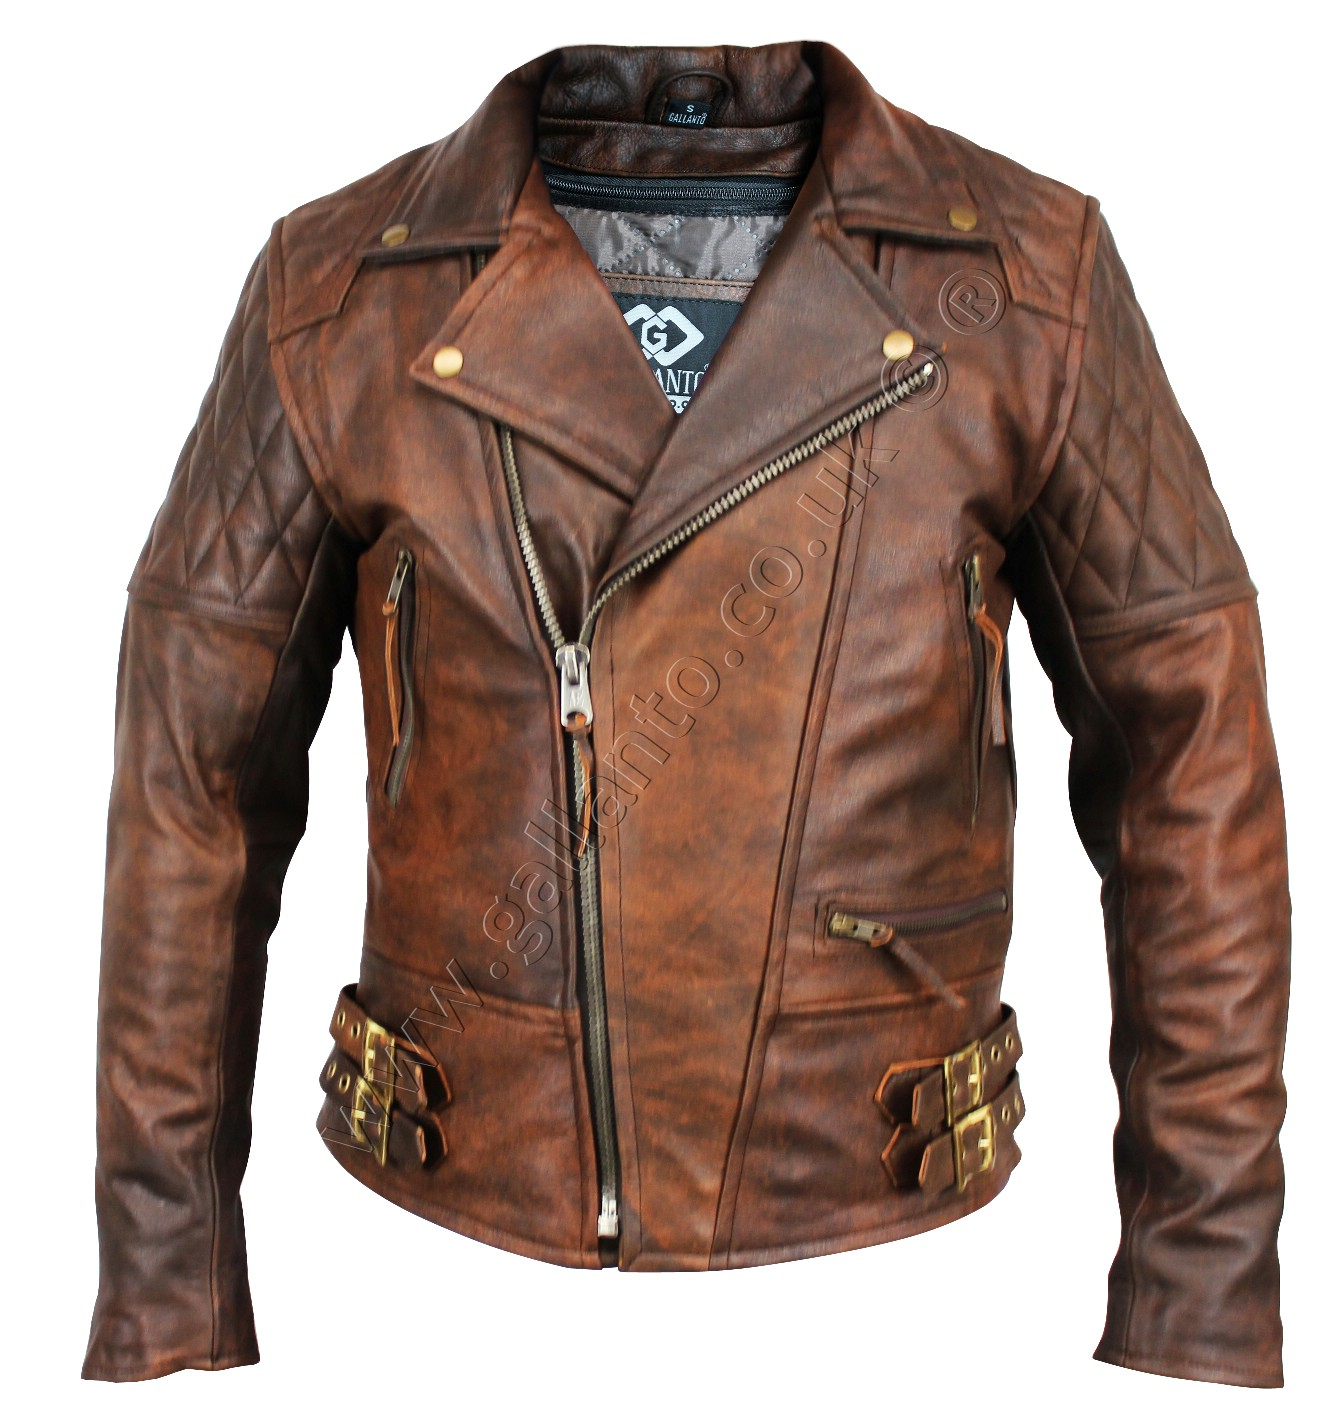 9d78ffb8f692 106 Classic Diamond Brown Motorcycle Leather Jacket - Wholesaler of ...